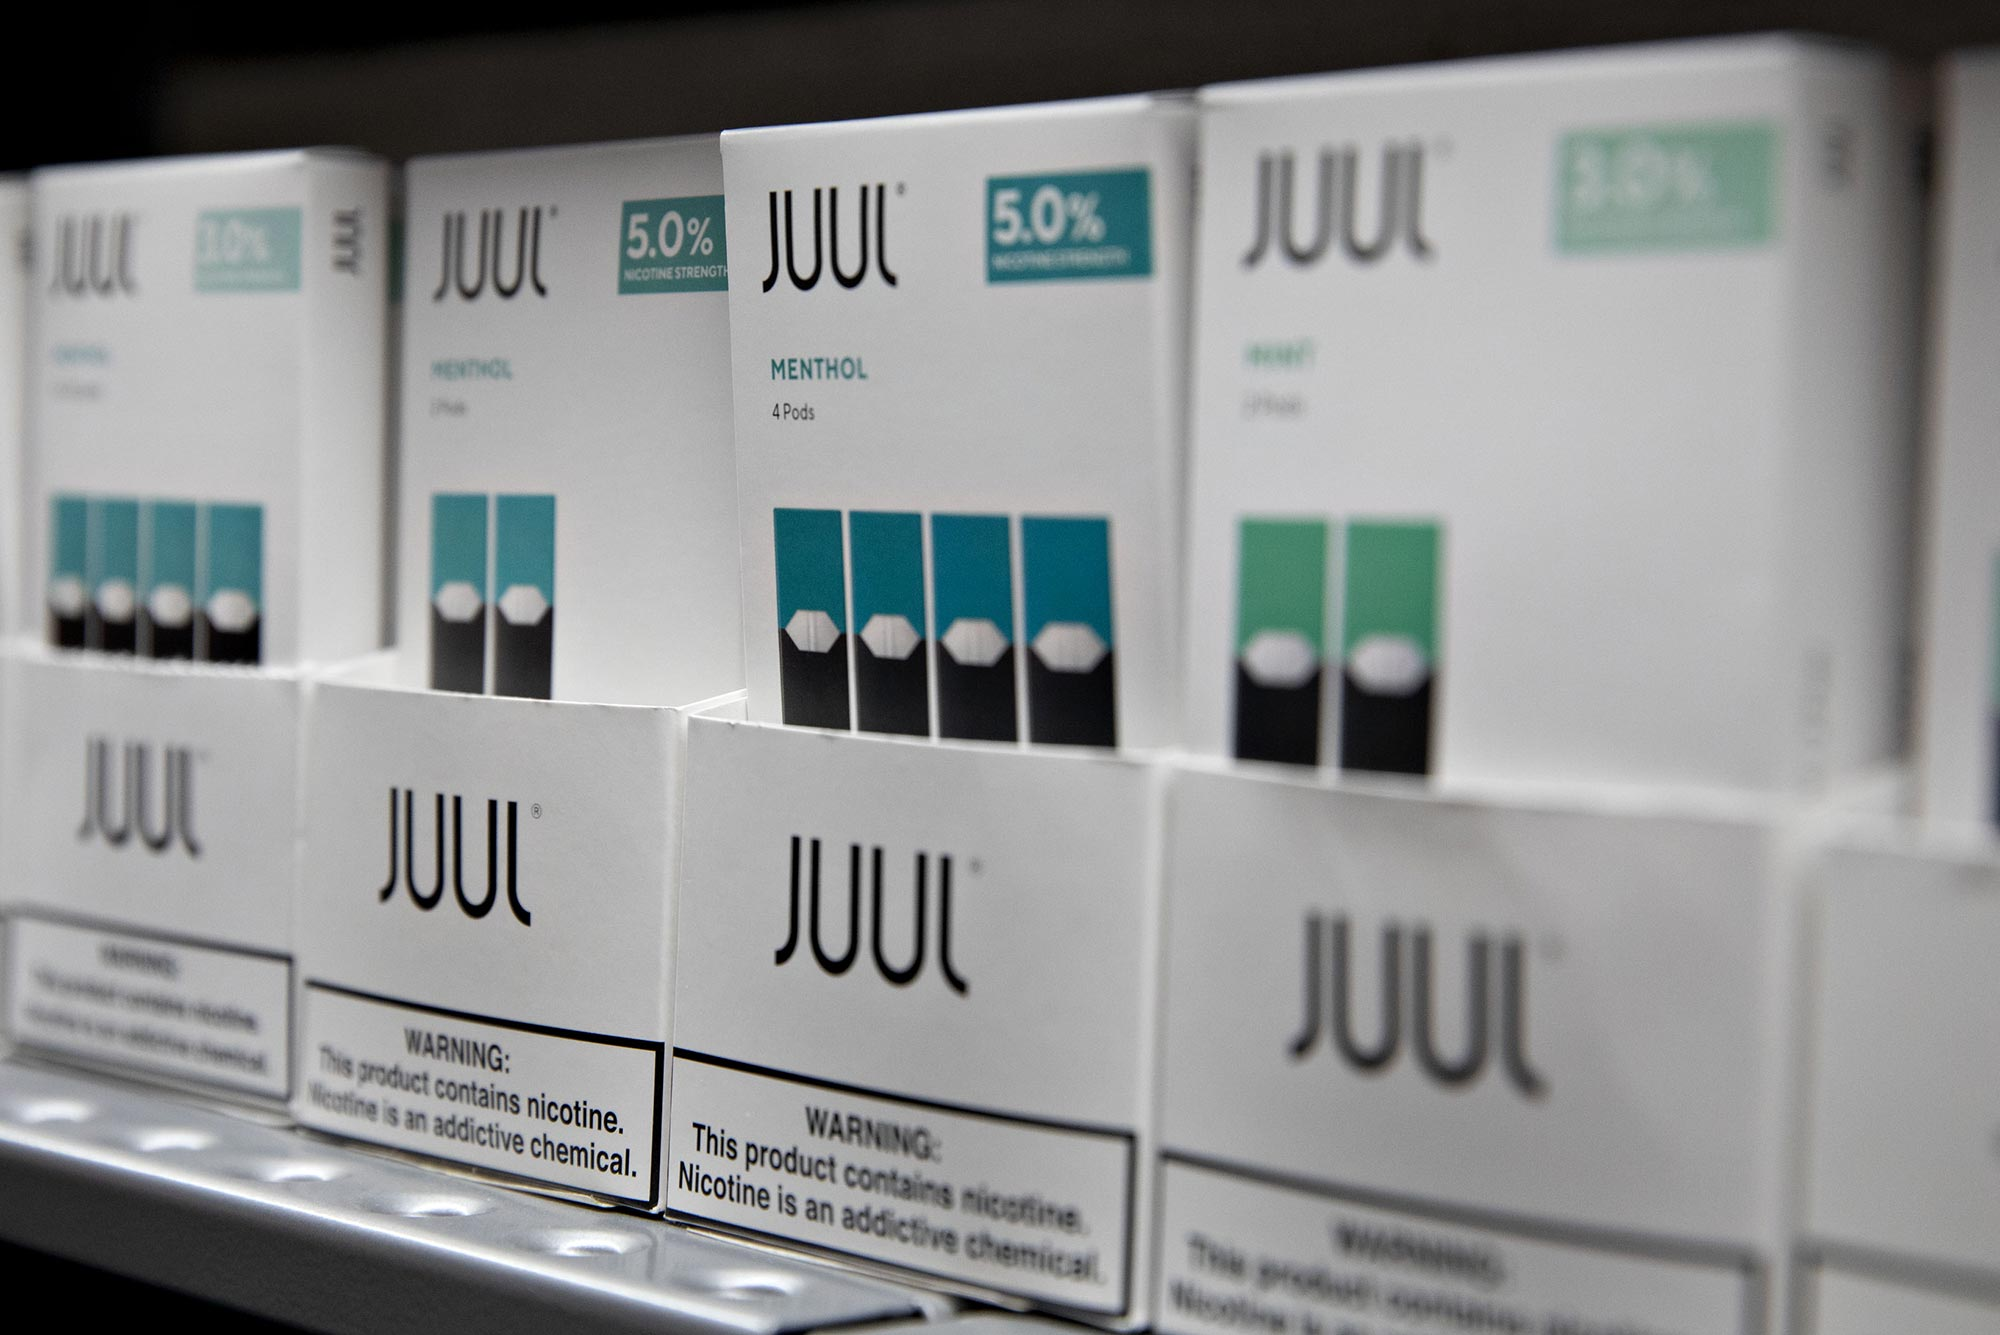 Packs of JUUL e-cigarettes on a display shelf focused on a pack of Menthol flavored vape package.